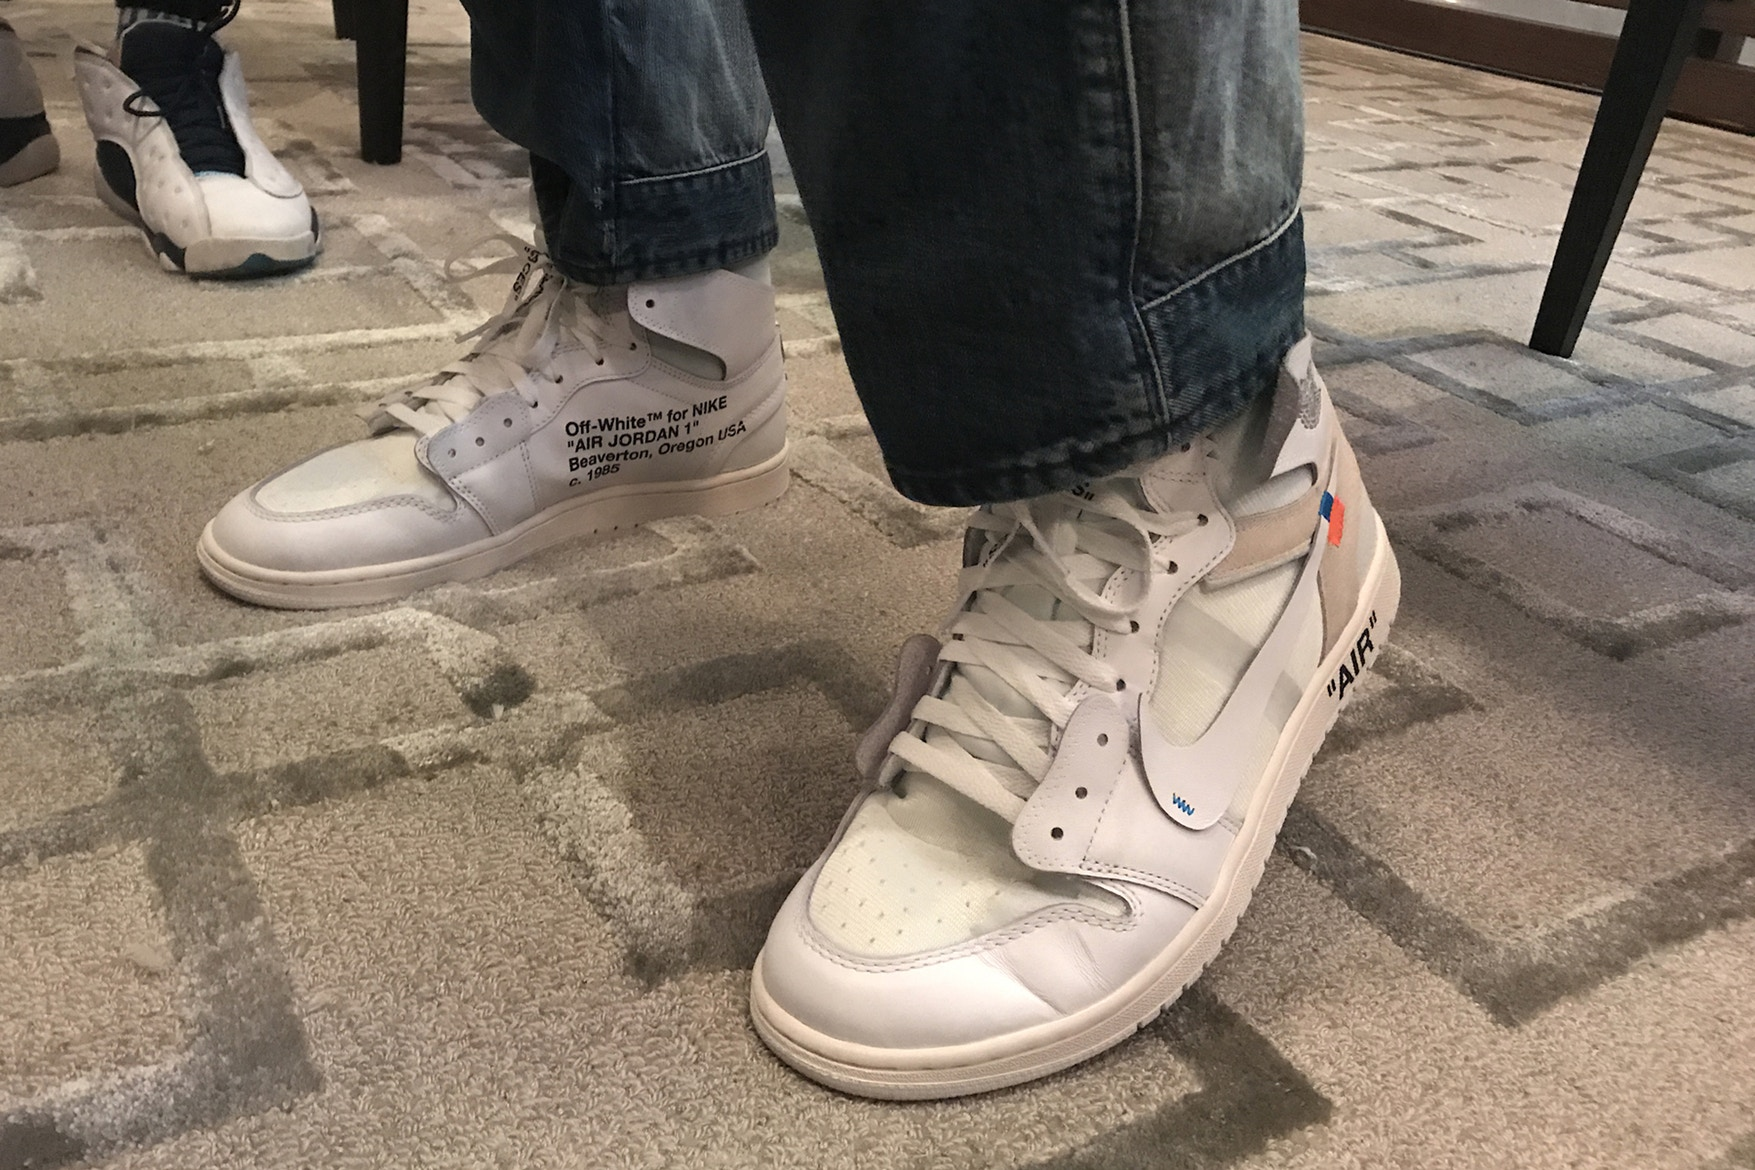 The Off-White x Air Jordan 1 Could Be Set to Receive a White Colourway